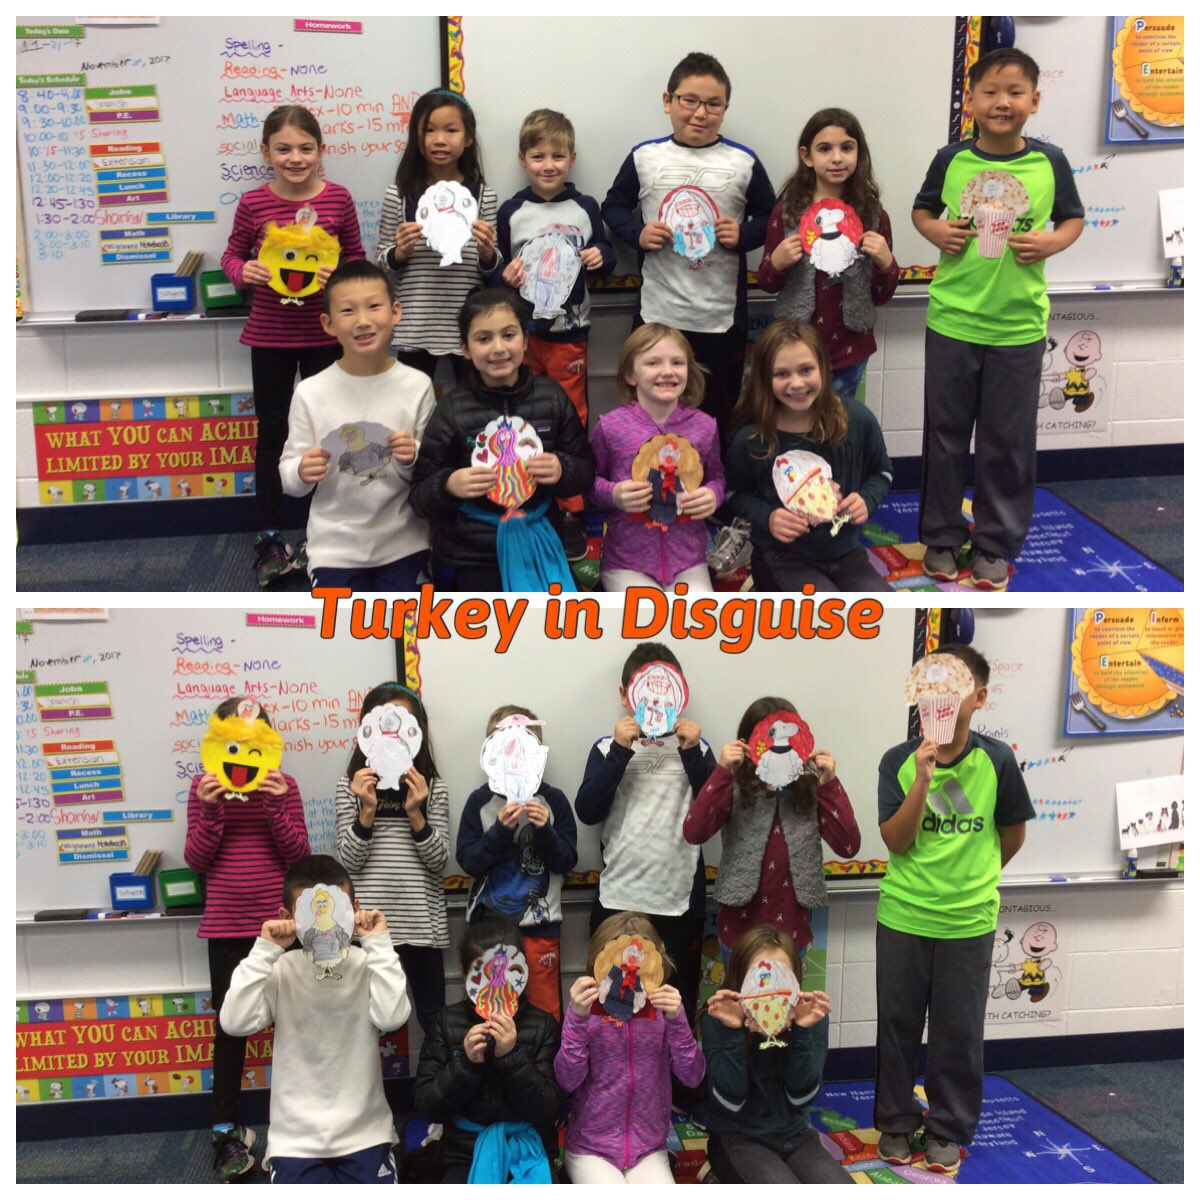 test Twitter Media - Turkey in disguise! #d30learns #SaveTheTurkey! https://t.co/84SICZmhIg